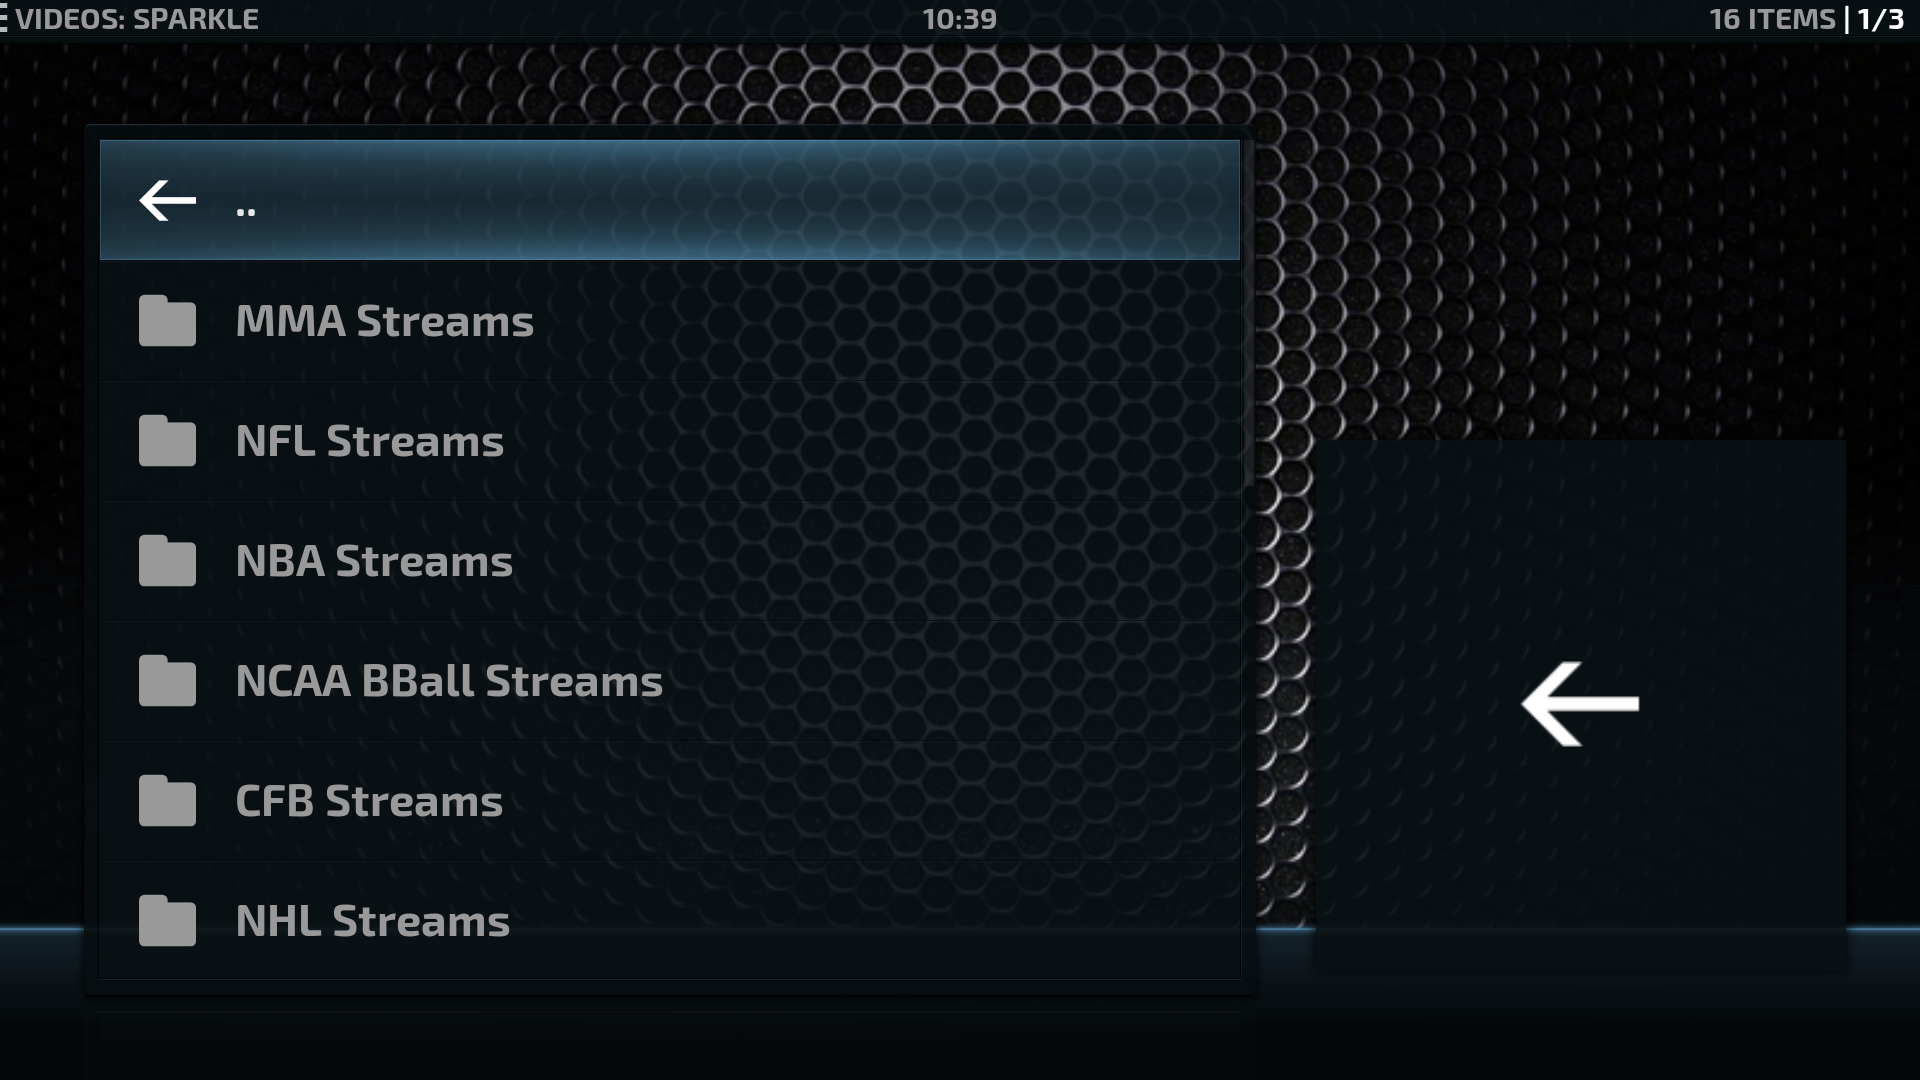 The Ultimate Kodi Sports Guide - What Addons to Use - Best for Kodi